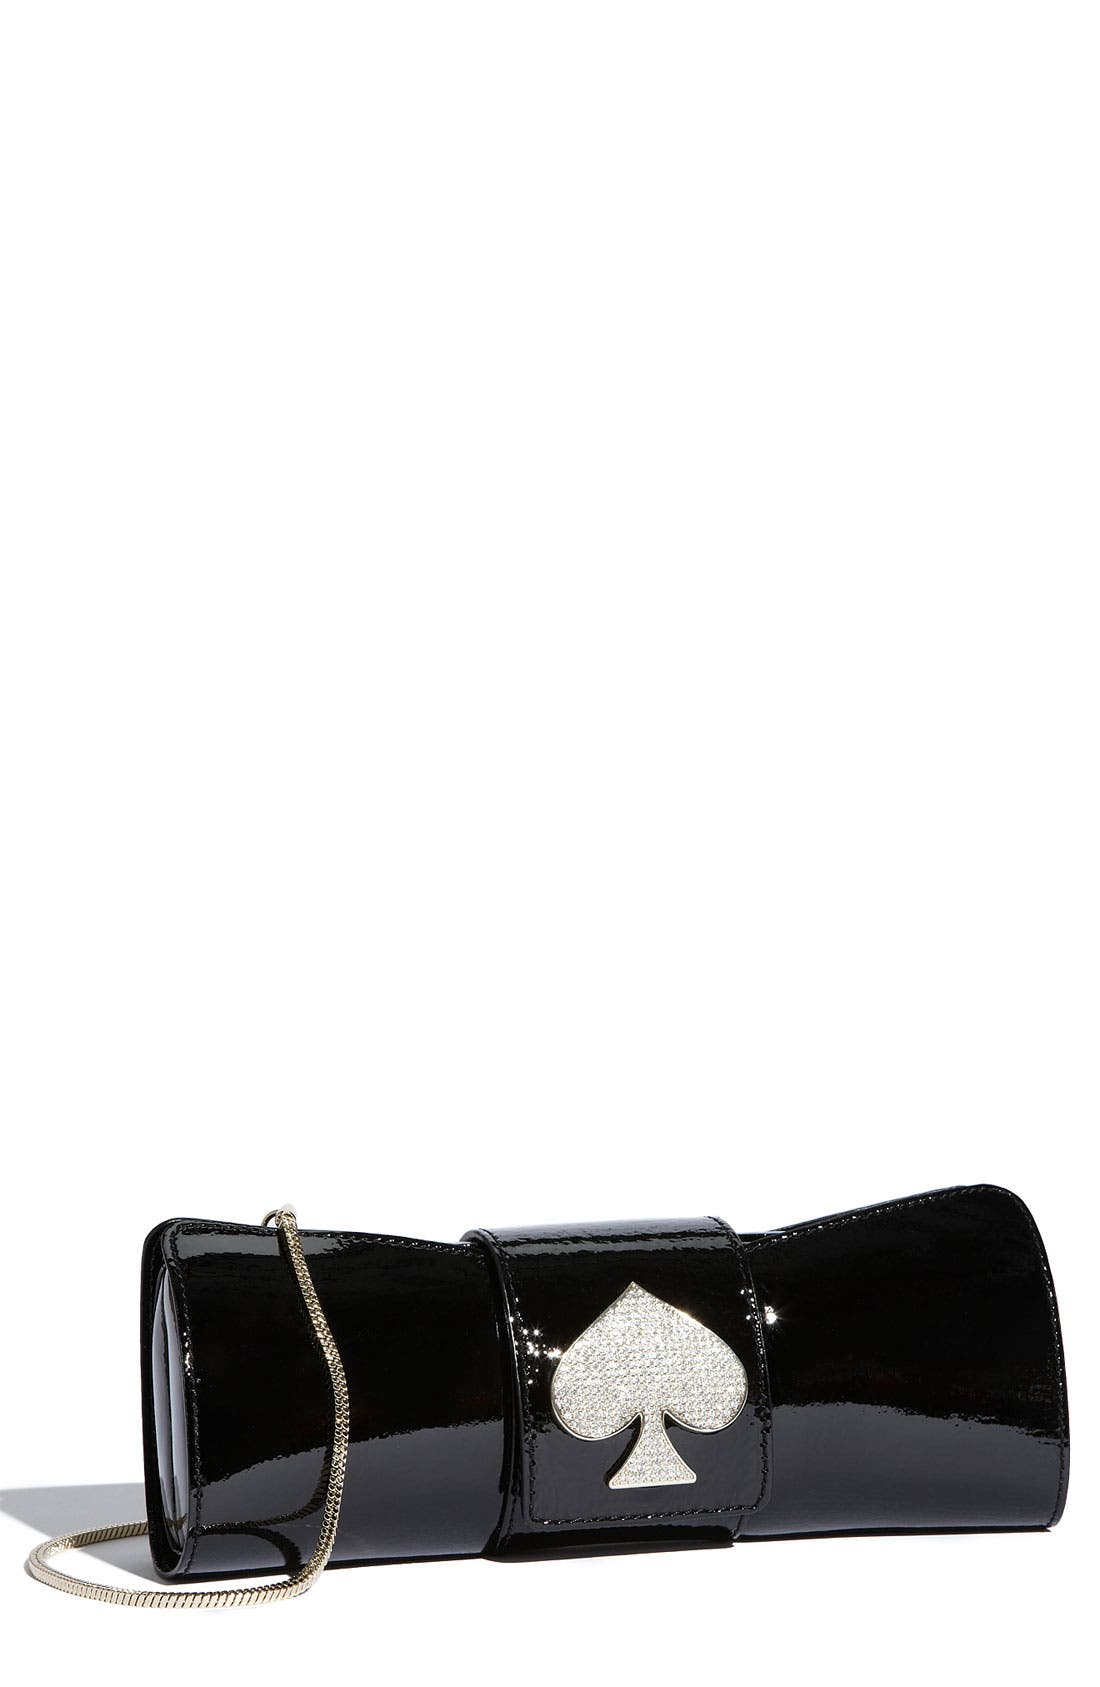 KATE SPADE NEW YORK,                             'sparkle spade bow' clutch,                             Main thumbnail 1, color,                             001